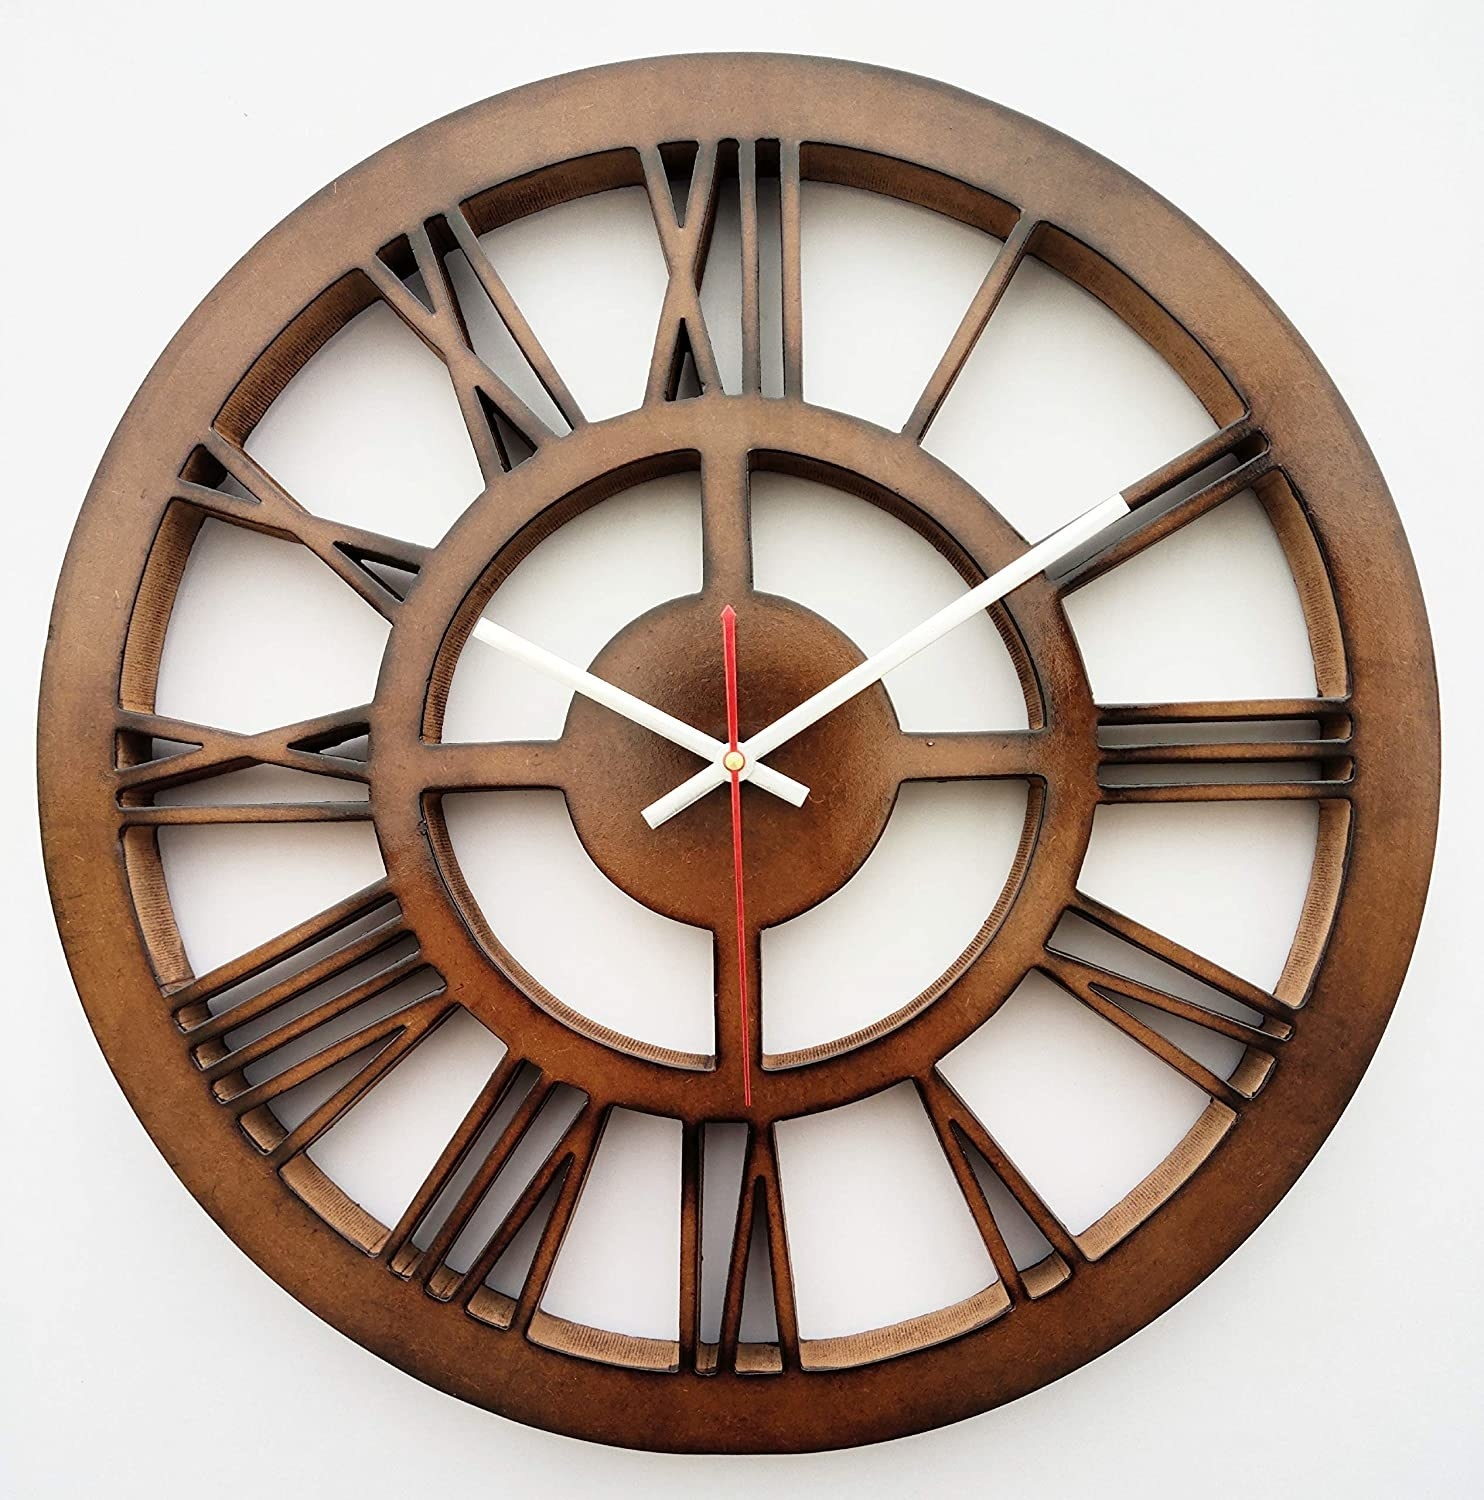 A brown MDF wall clock with Roman numerals.